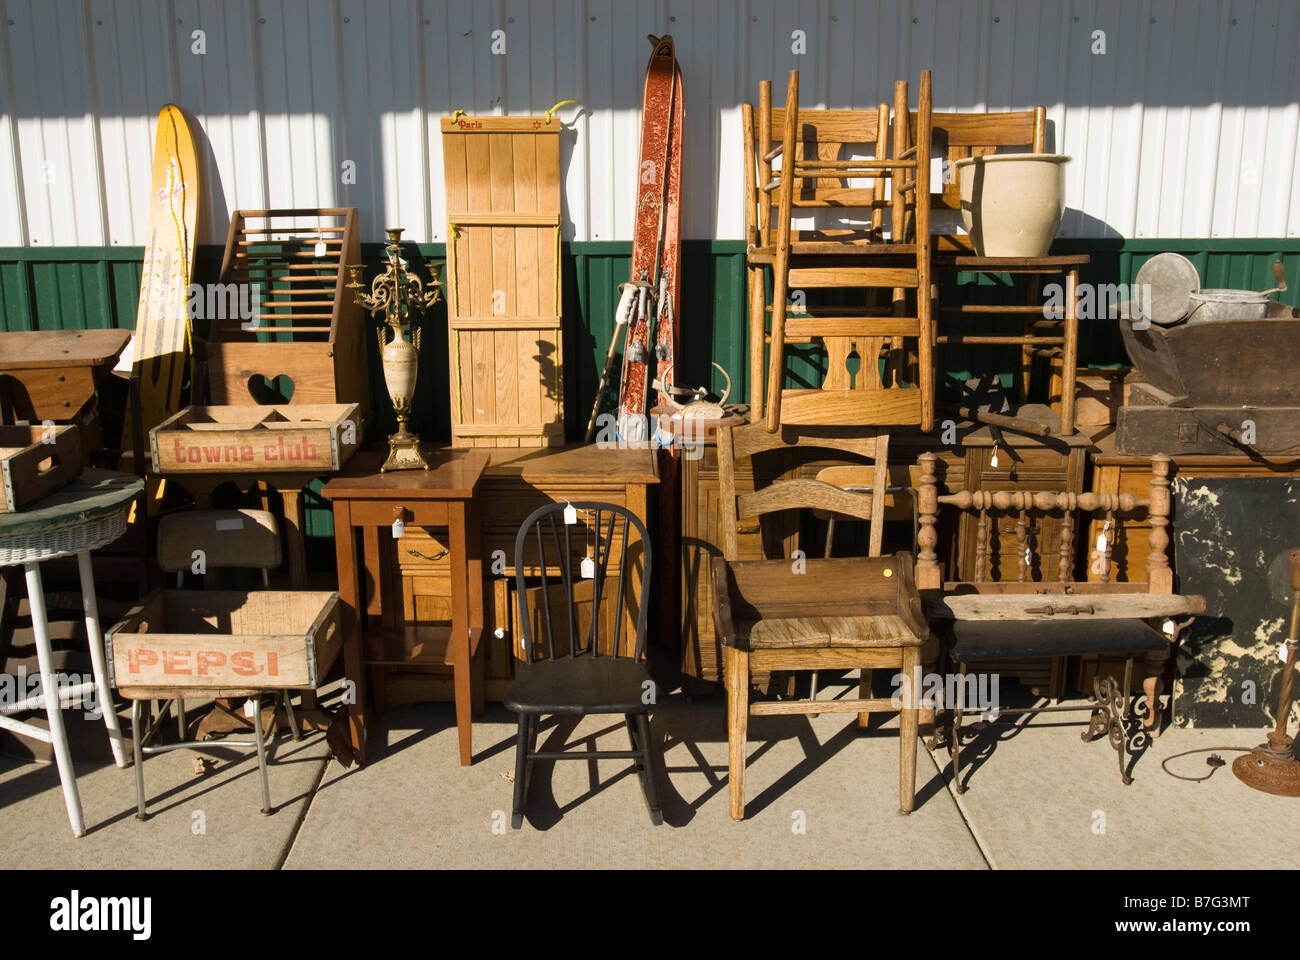 Old furniture for sale at an antique mall in Michigan, USA. - Stock Image - Antique Furniture Junk Stock Photos & Antique Furniture Junk Stock